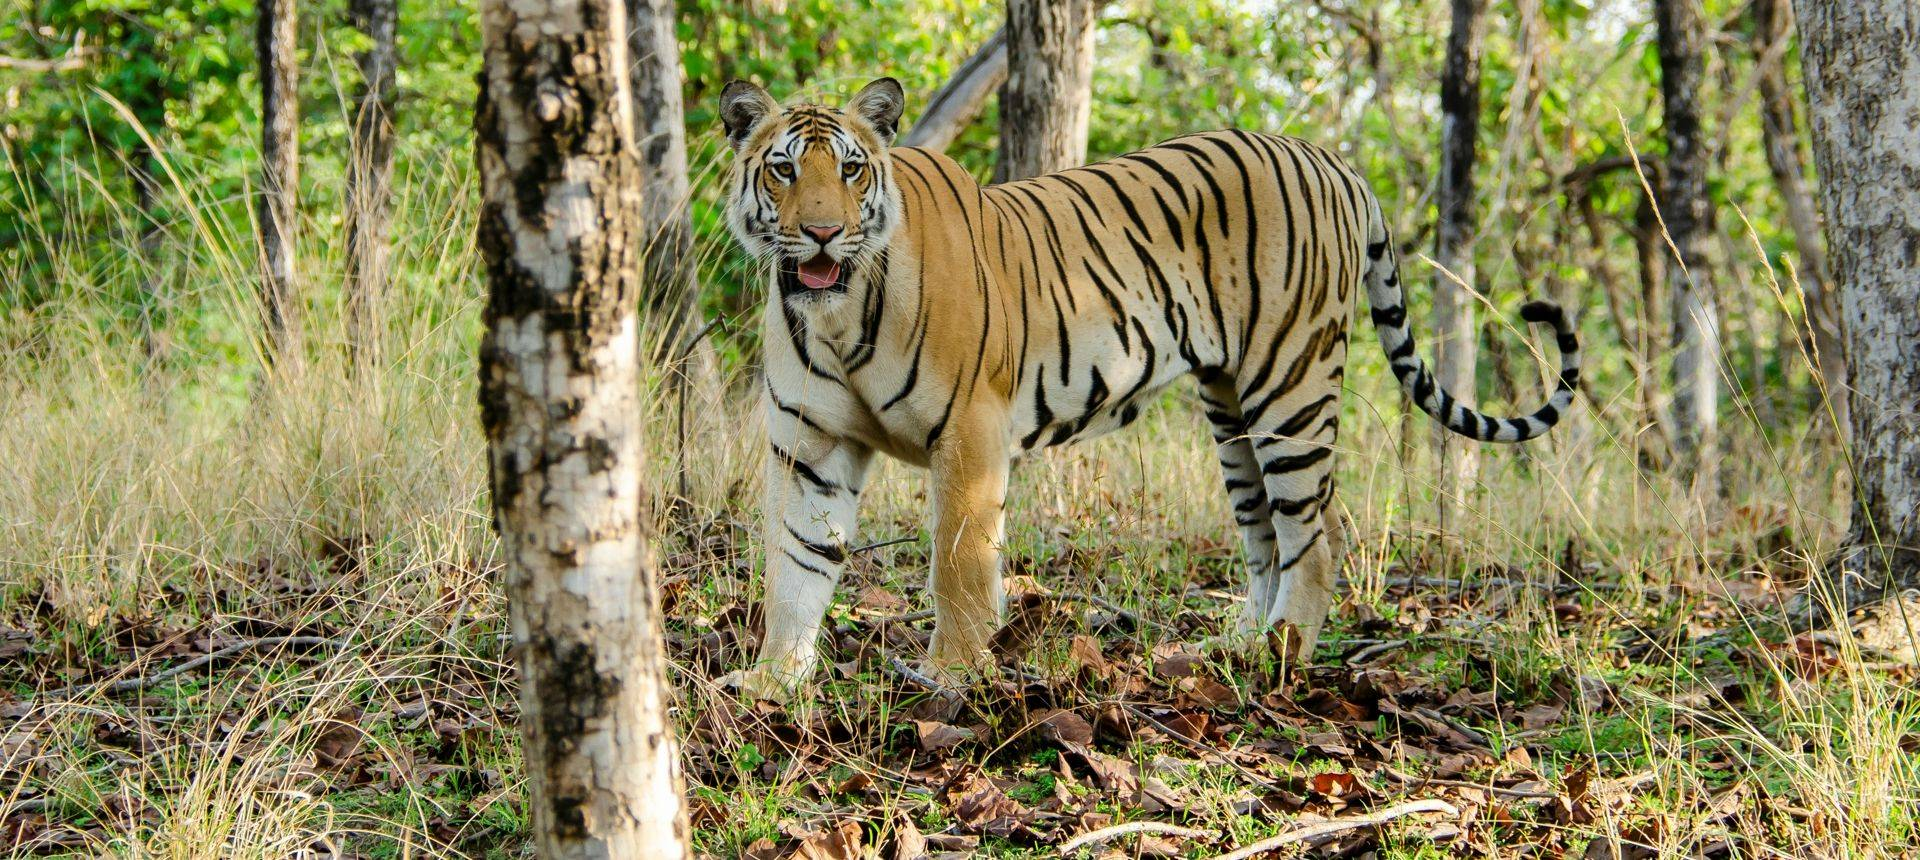 Tiger, Pench, India Shutterstock 1161956254